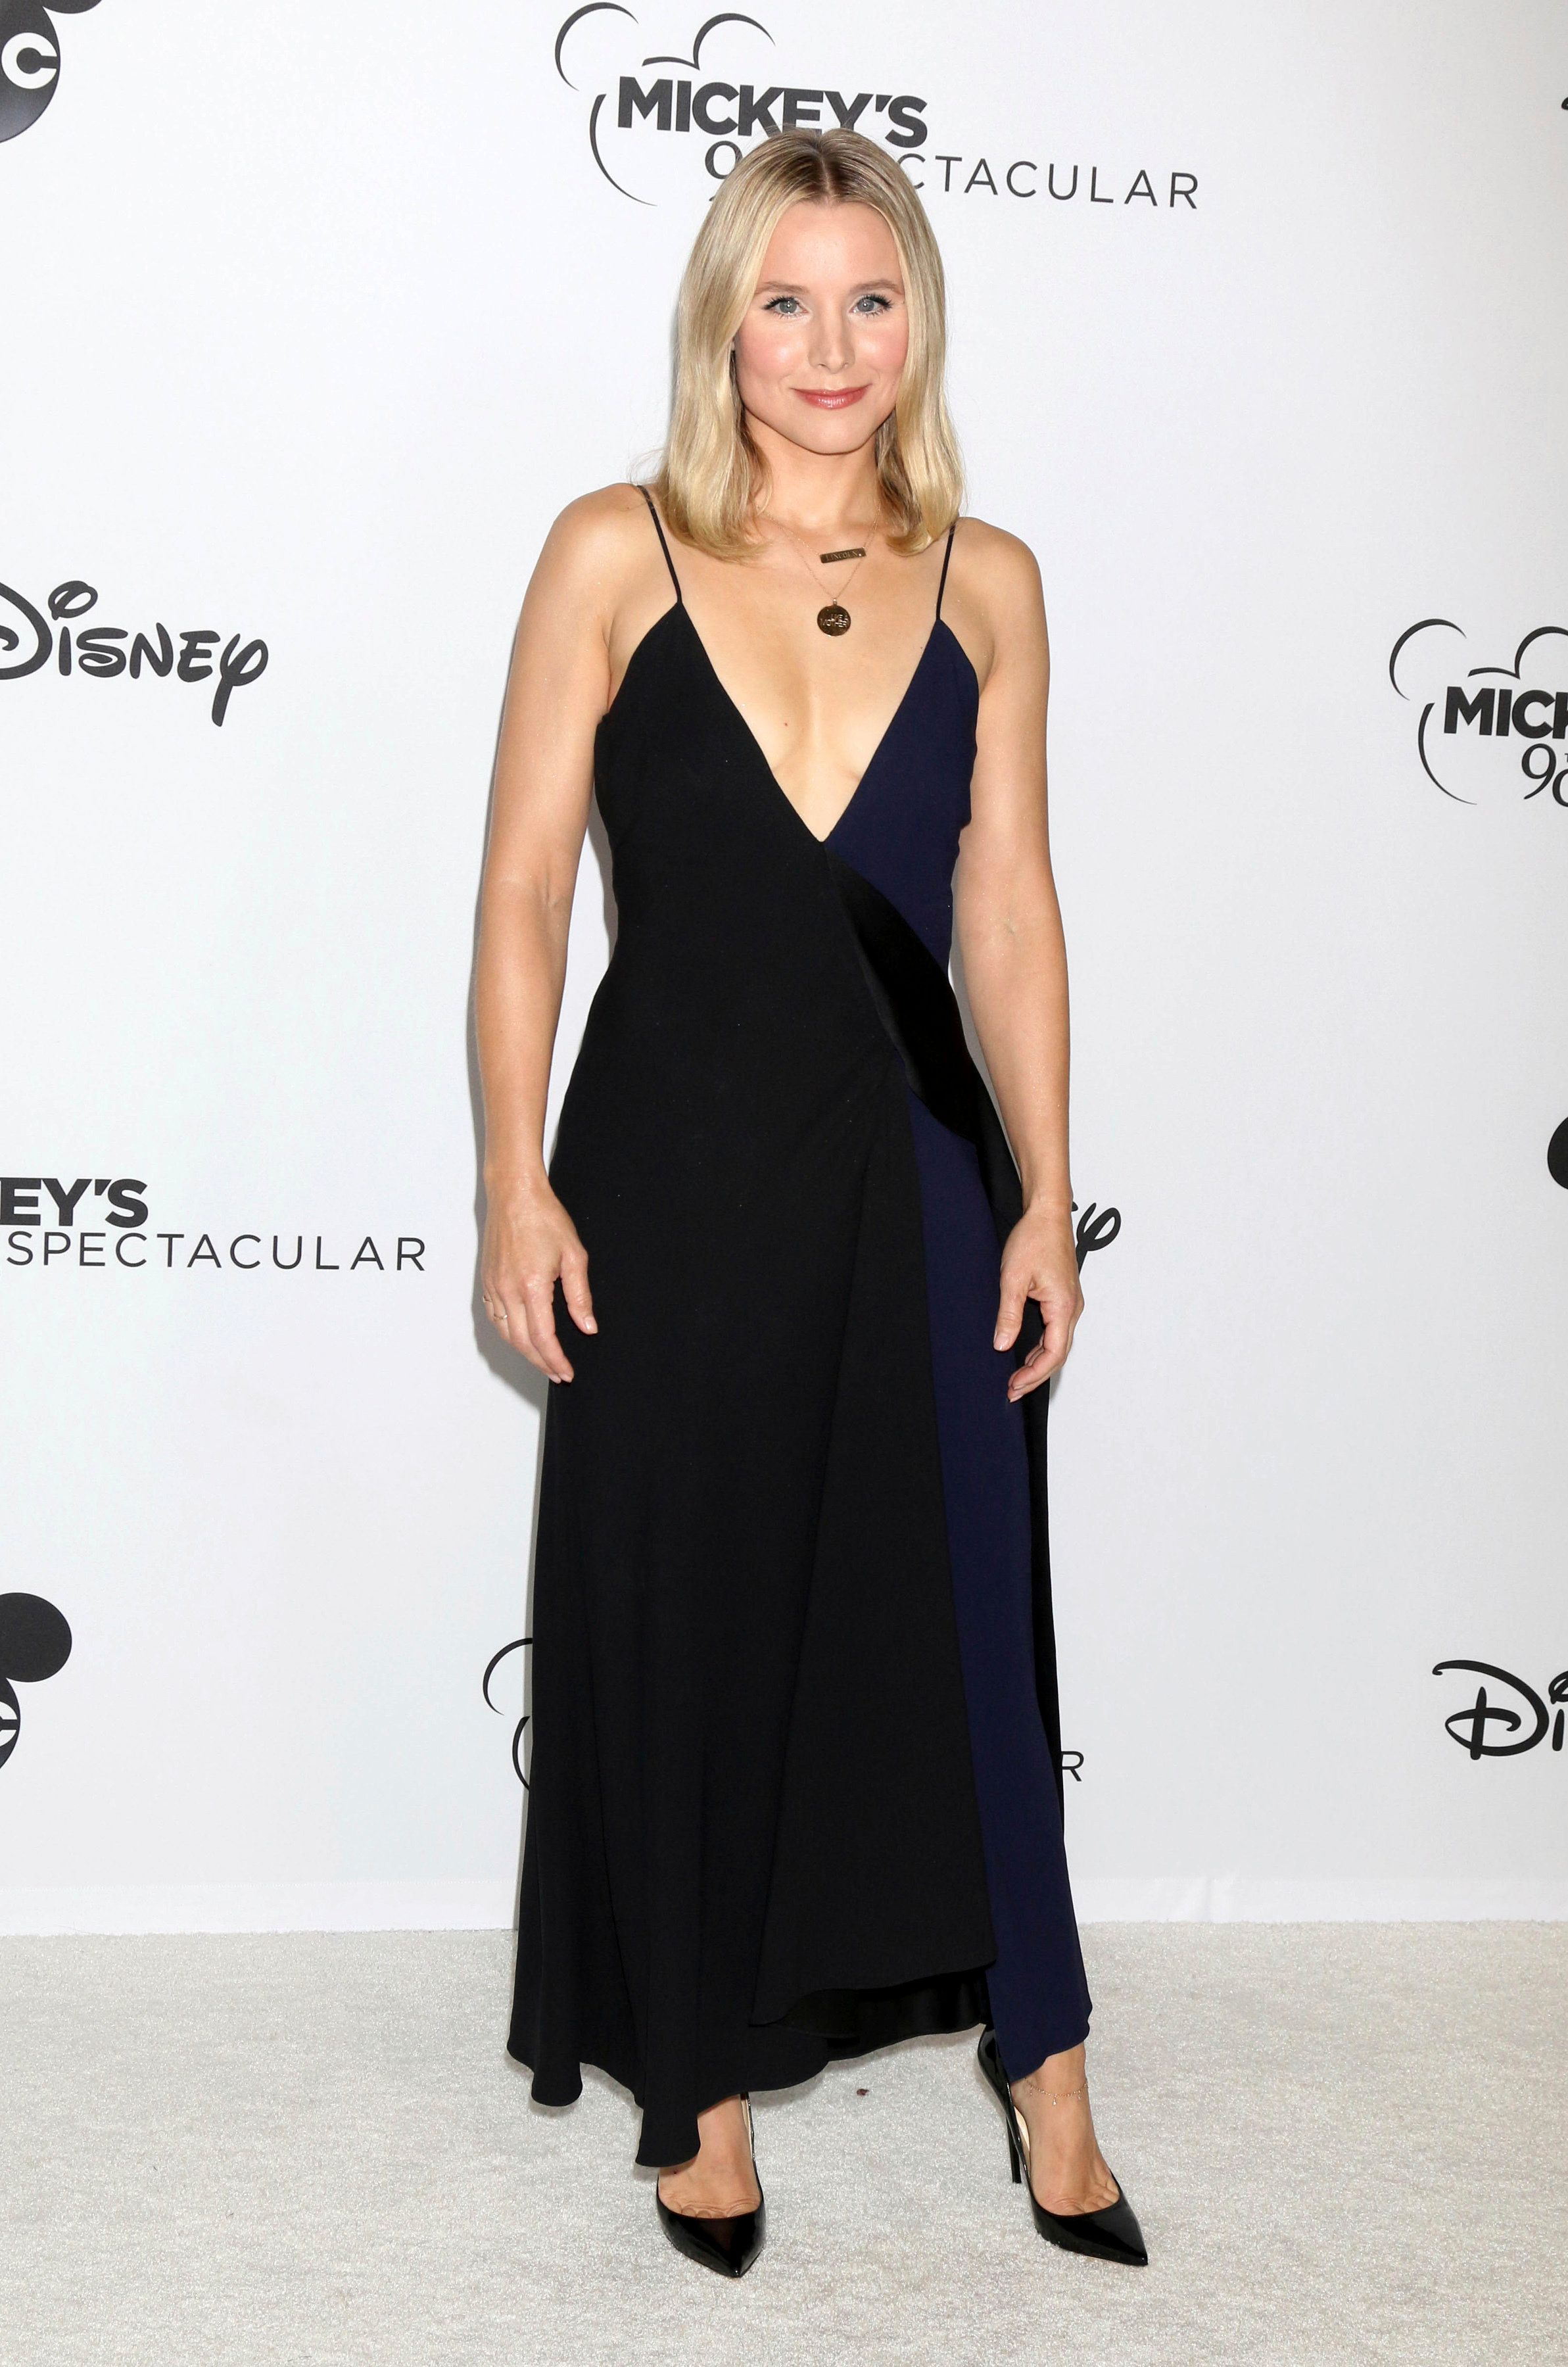 Kristen Bell arrives at Mickey's 90th Spectacular event.